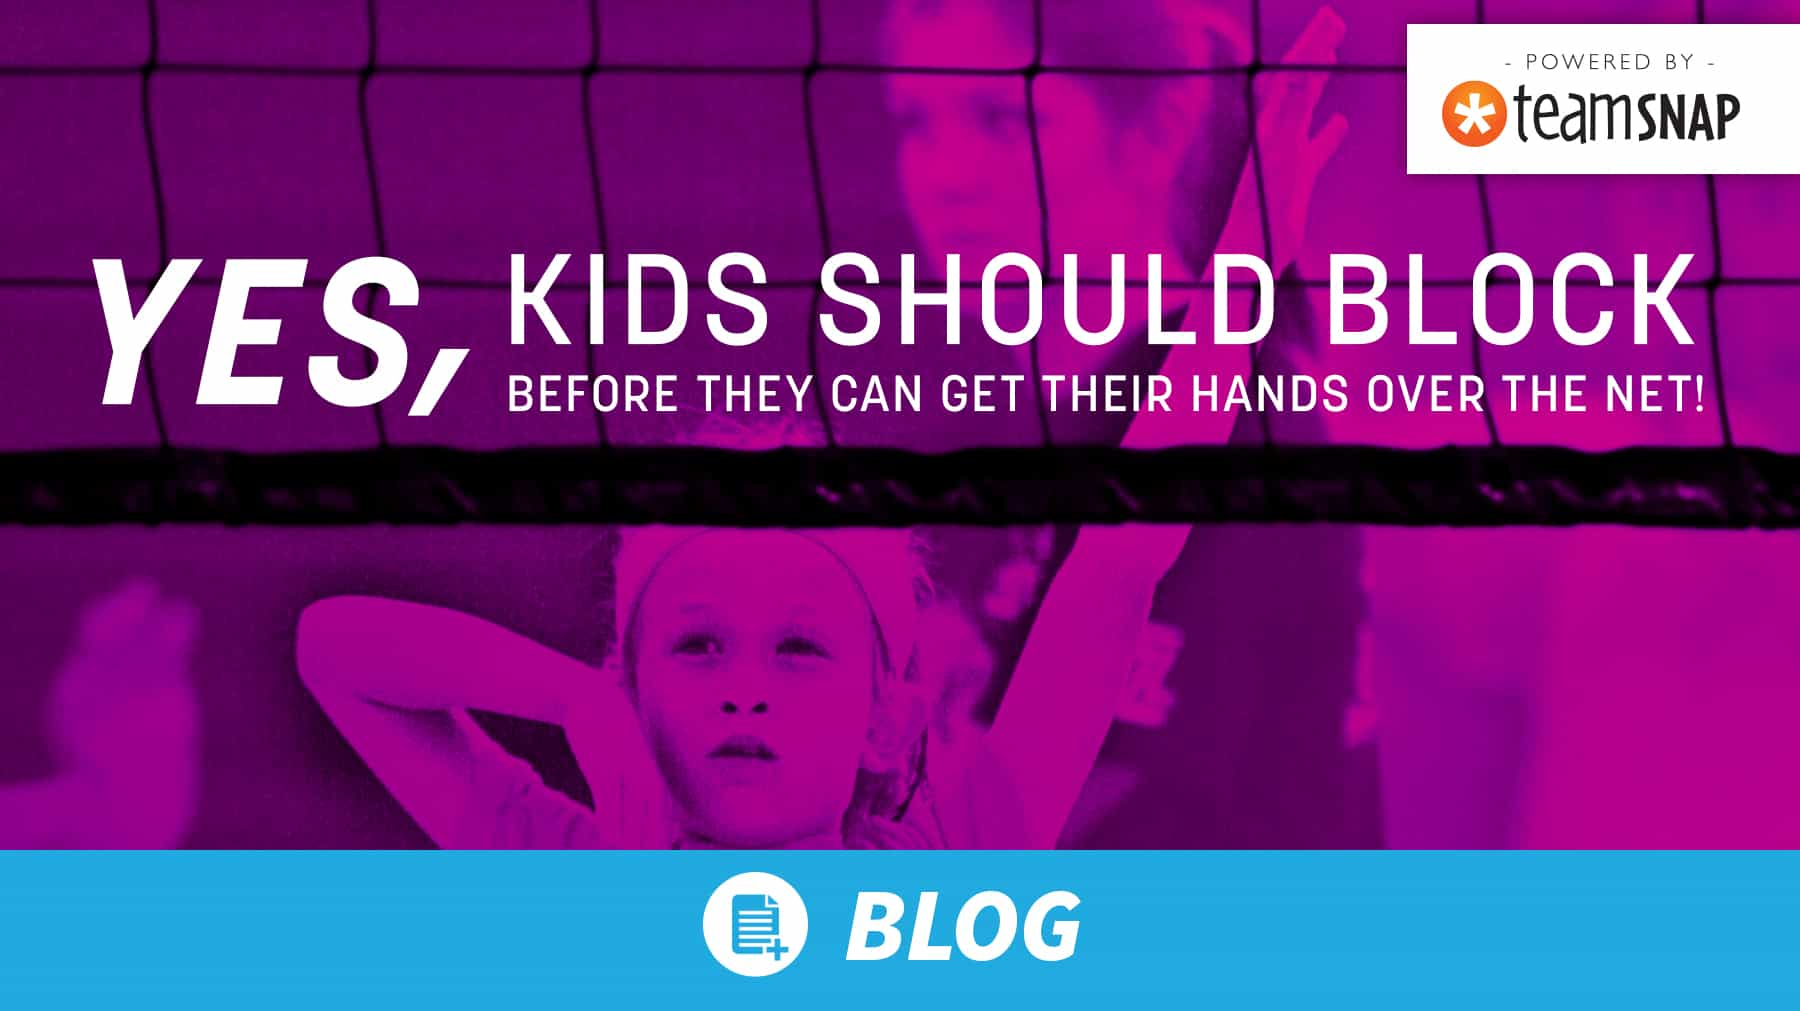 Yes, kids should block before they can get their hands over the net!